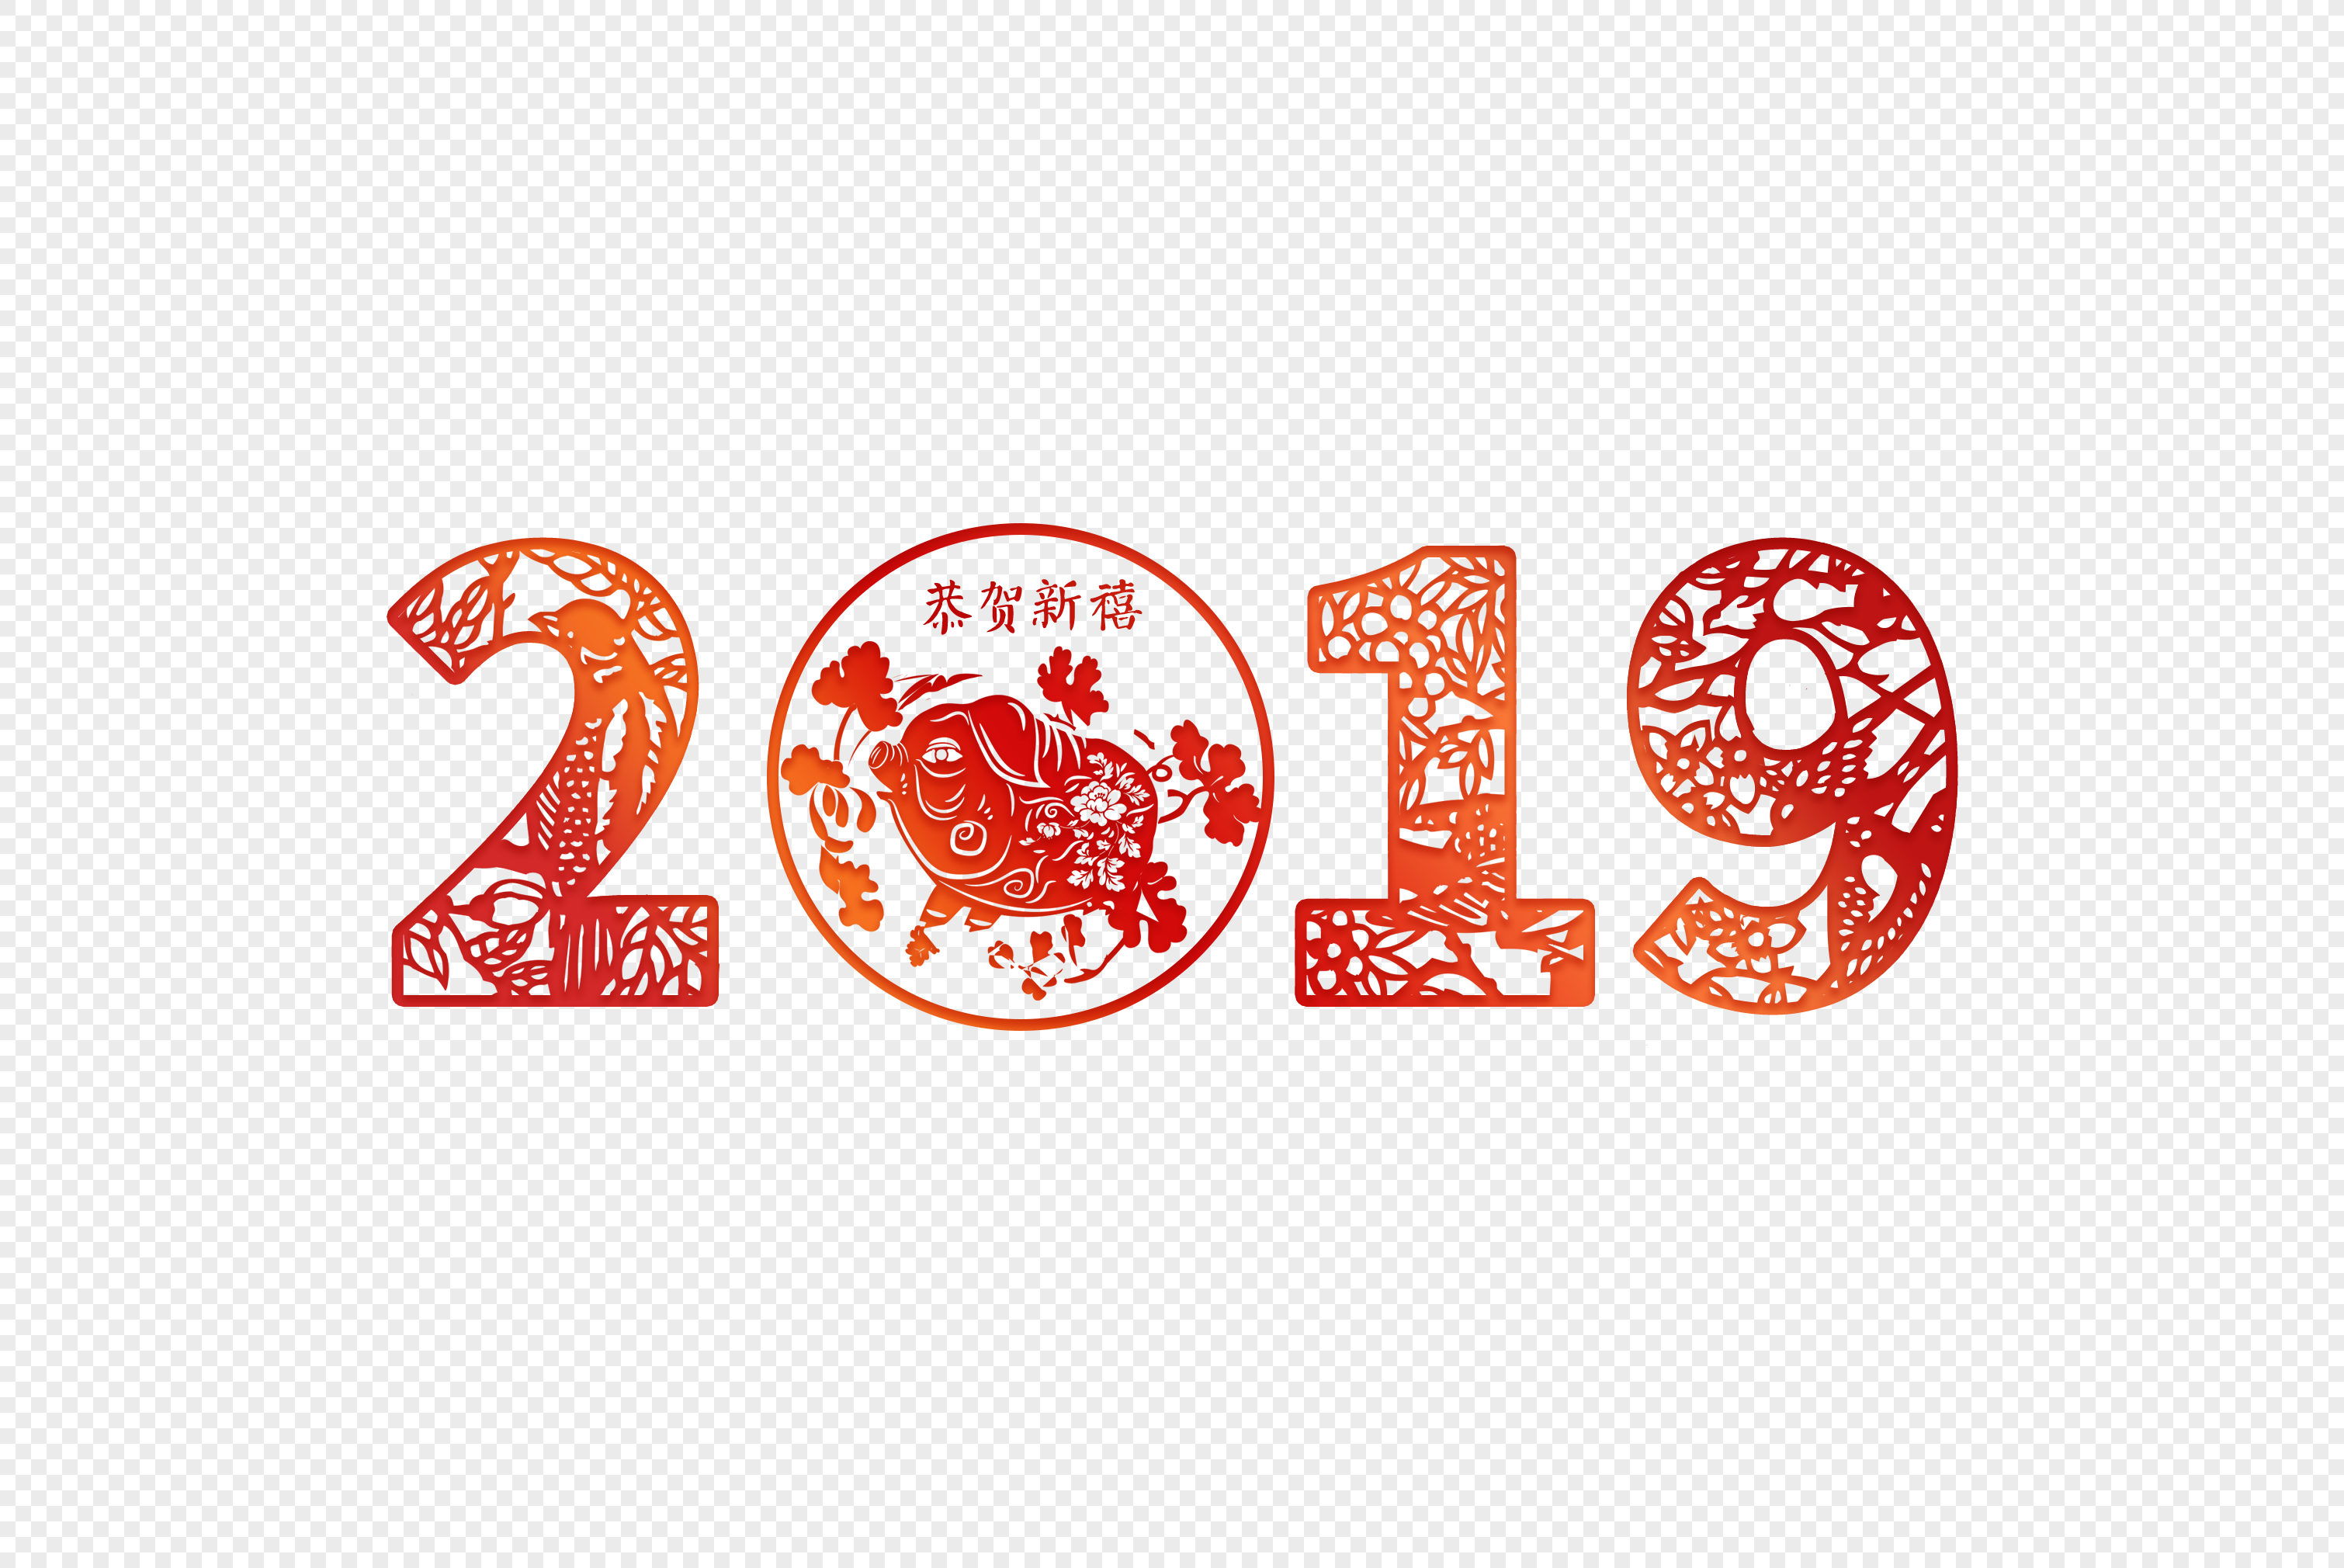 2019 spring festival new year paper cutting wind font png